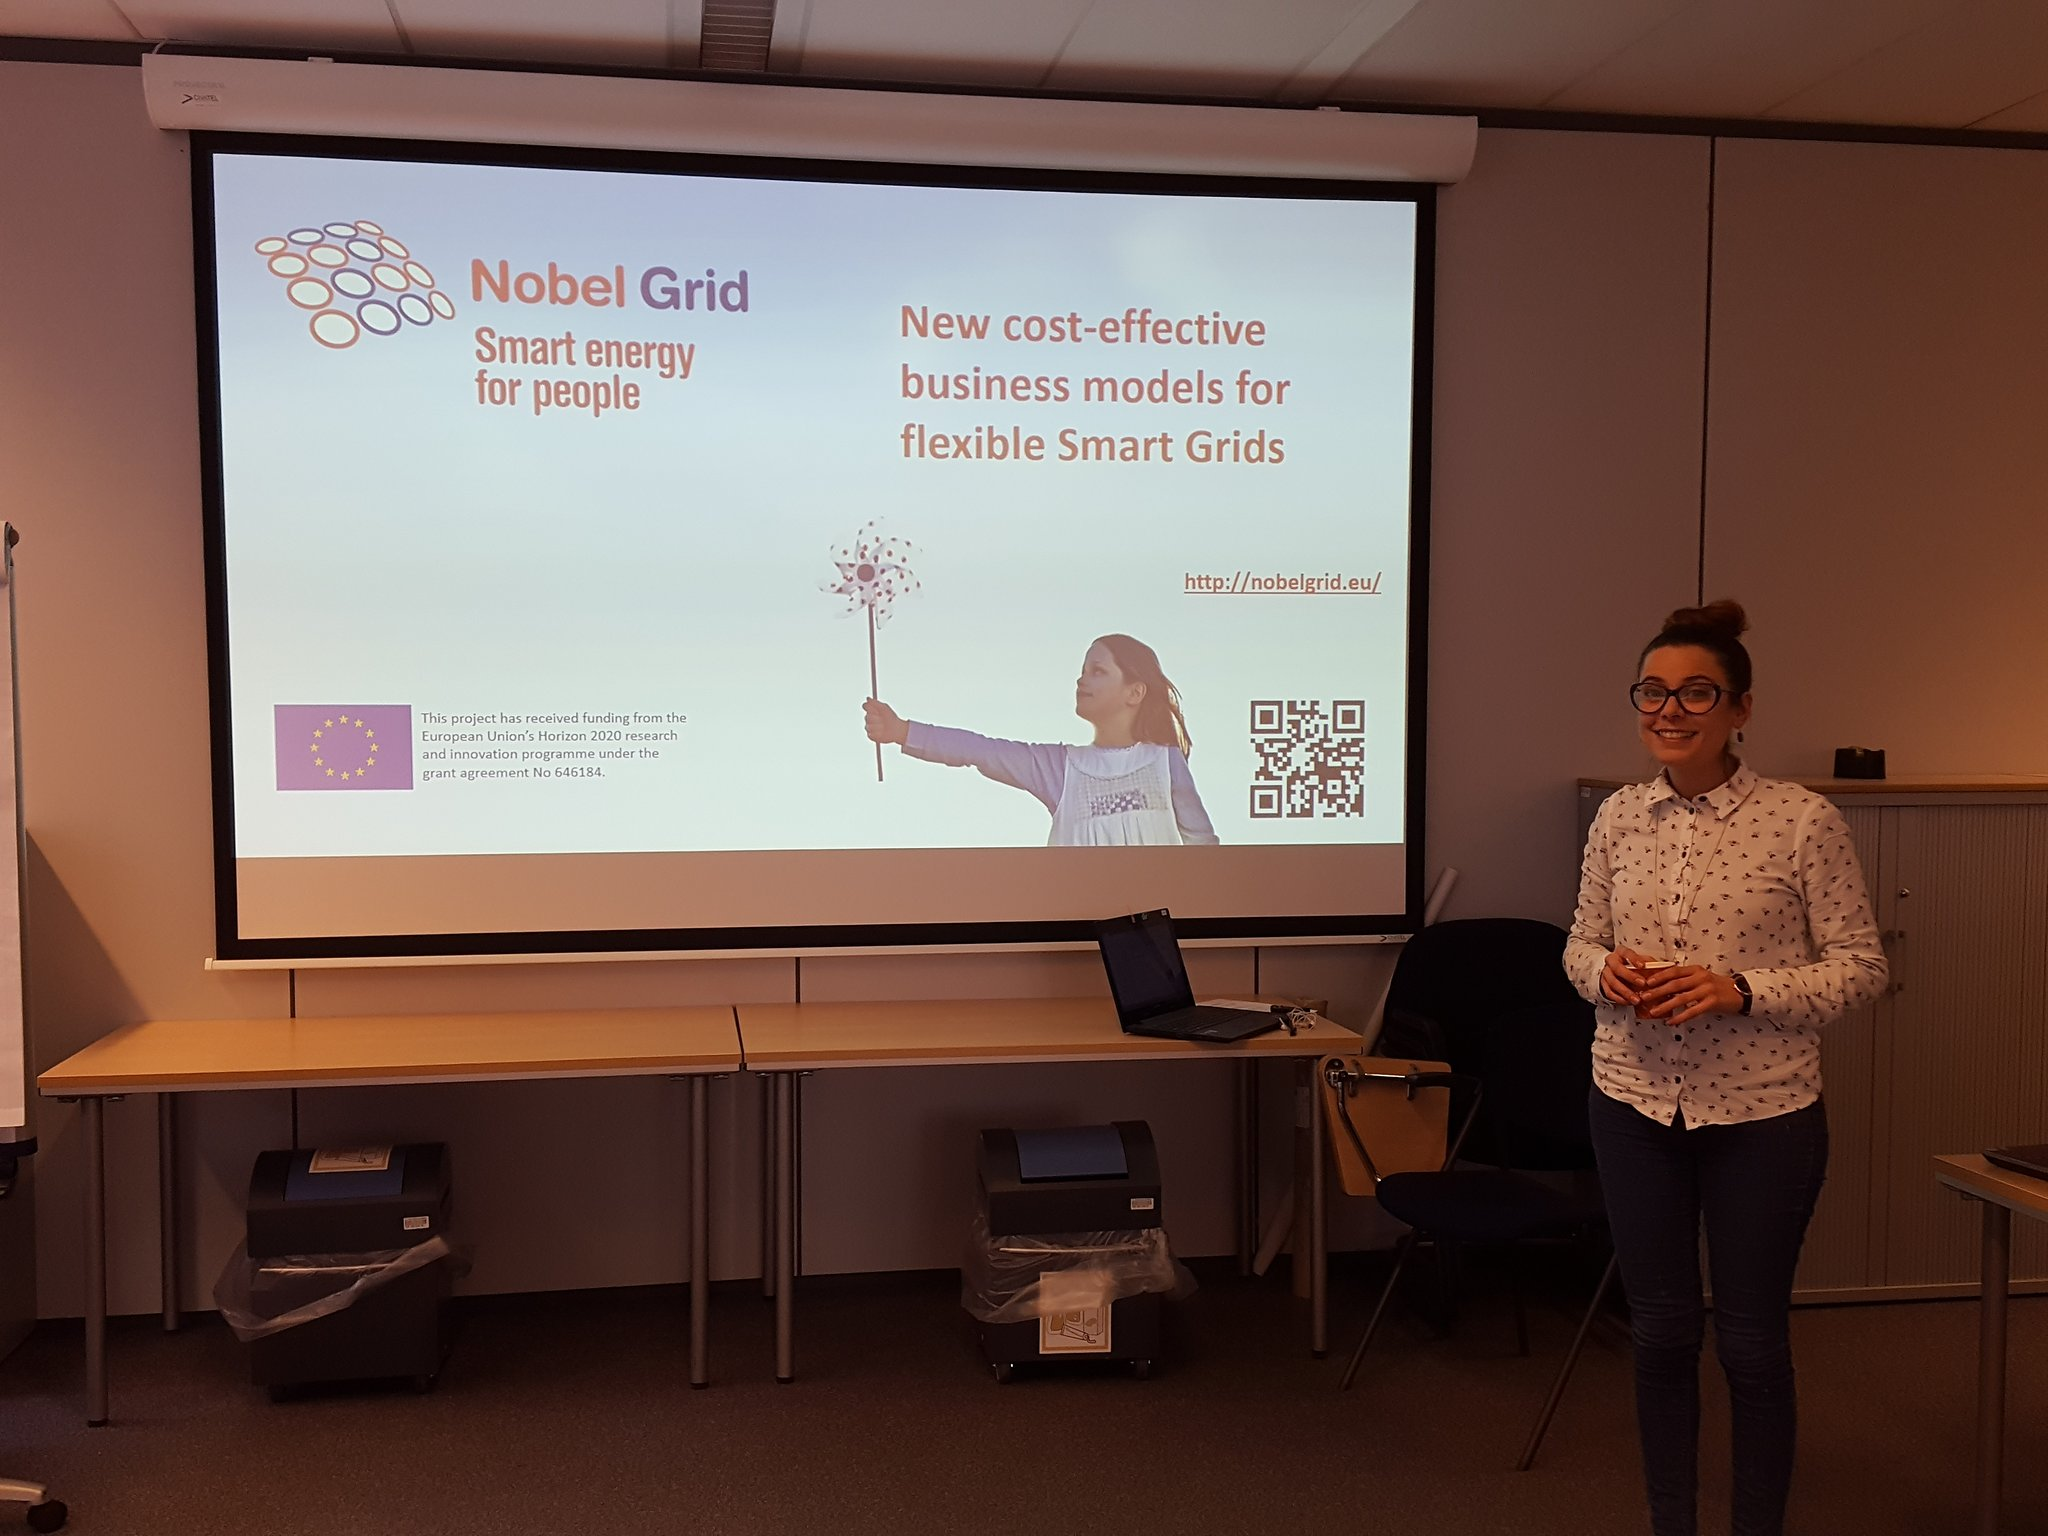 Ana Isabel with useful Customer Engagement insights from #H2020  @NobelGrid project. @gazzema #smartgrid #EnergyStorage https://t.co/FZmiX7NK21